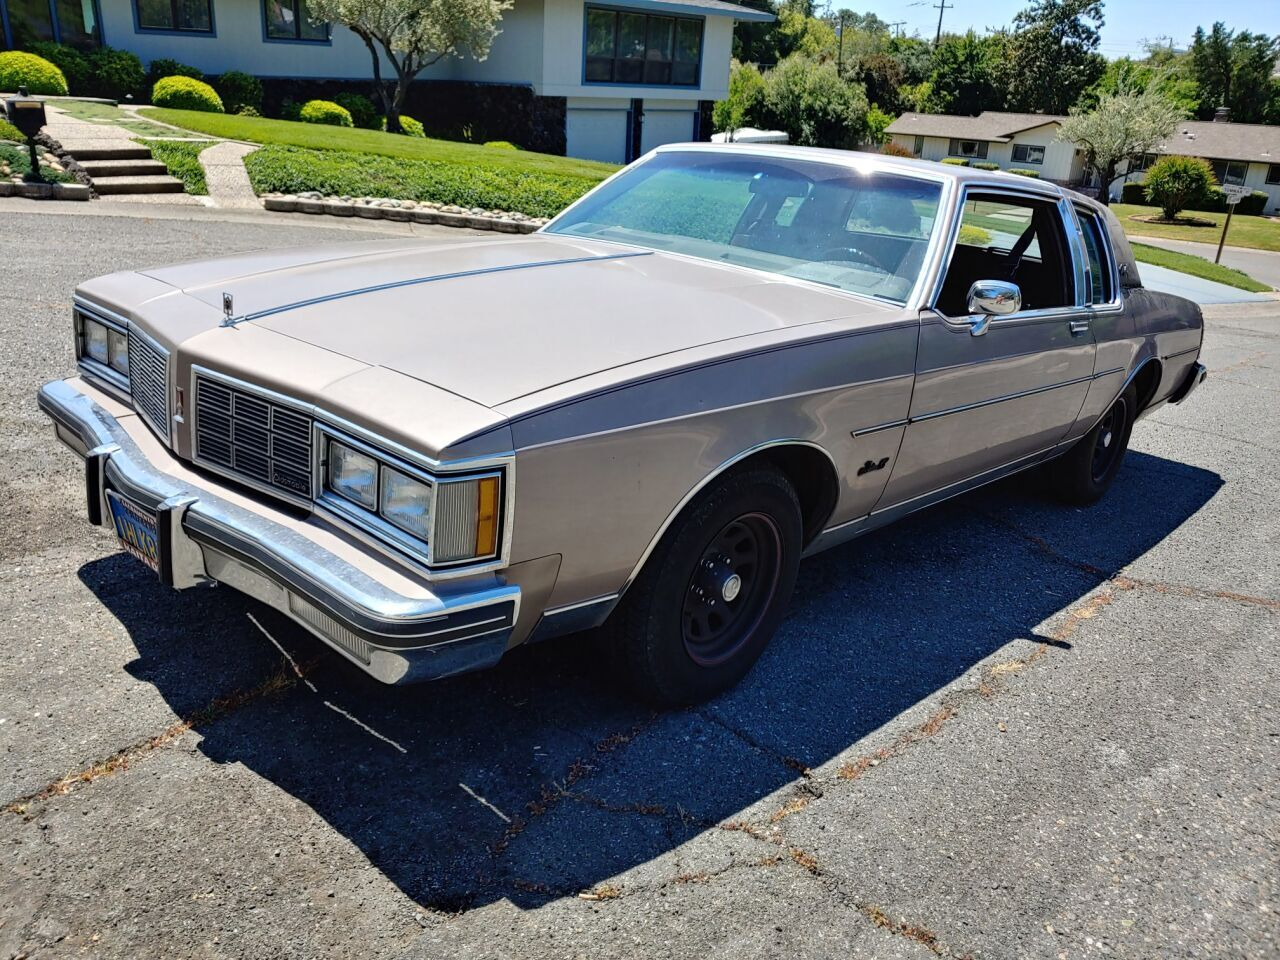 1983 Oldsmobile Delta Eighty-Eight